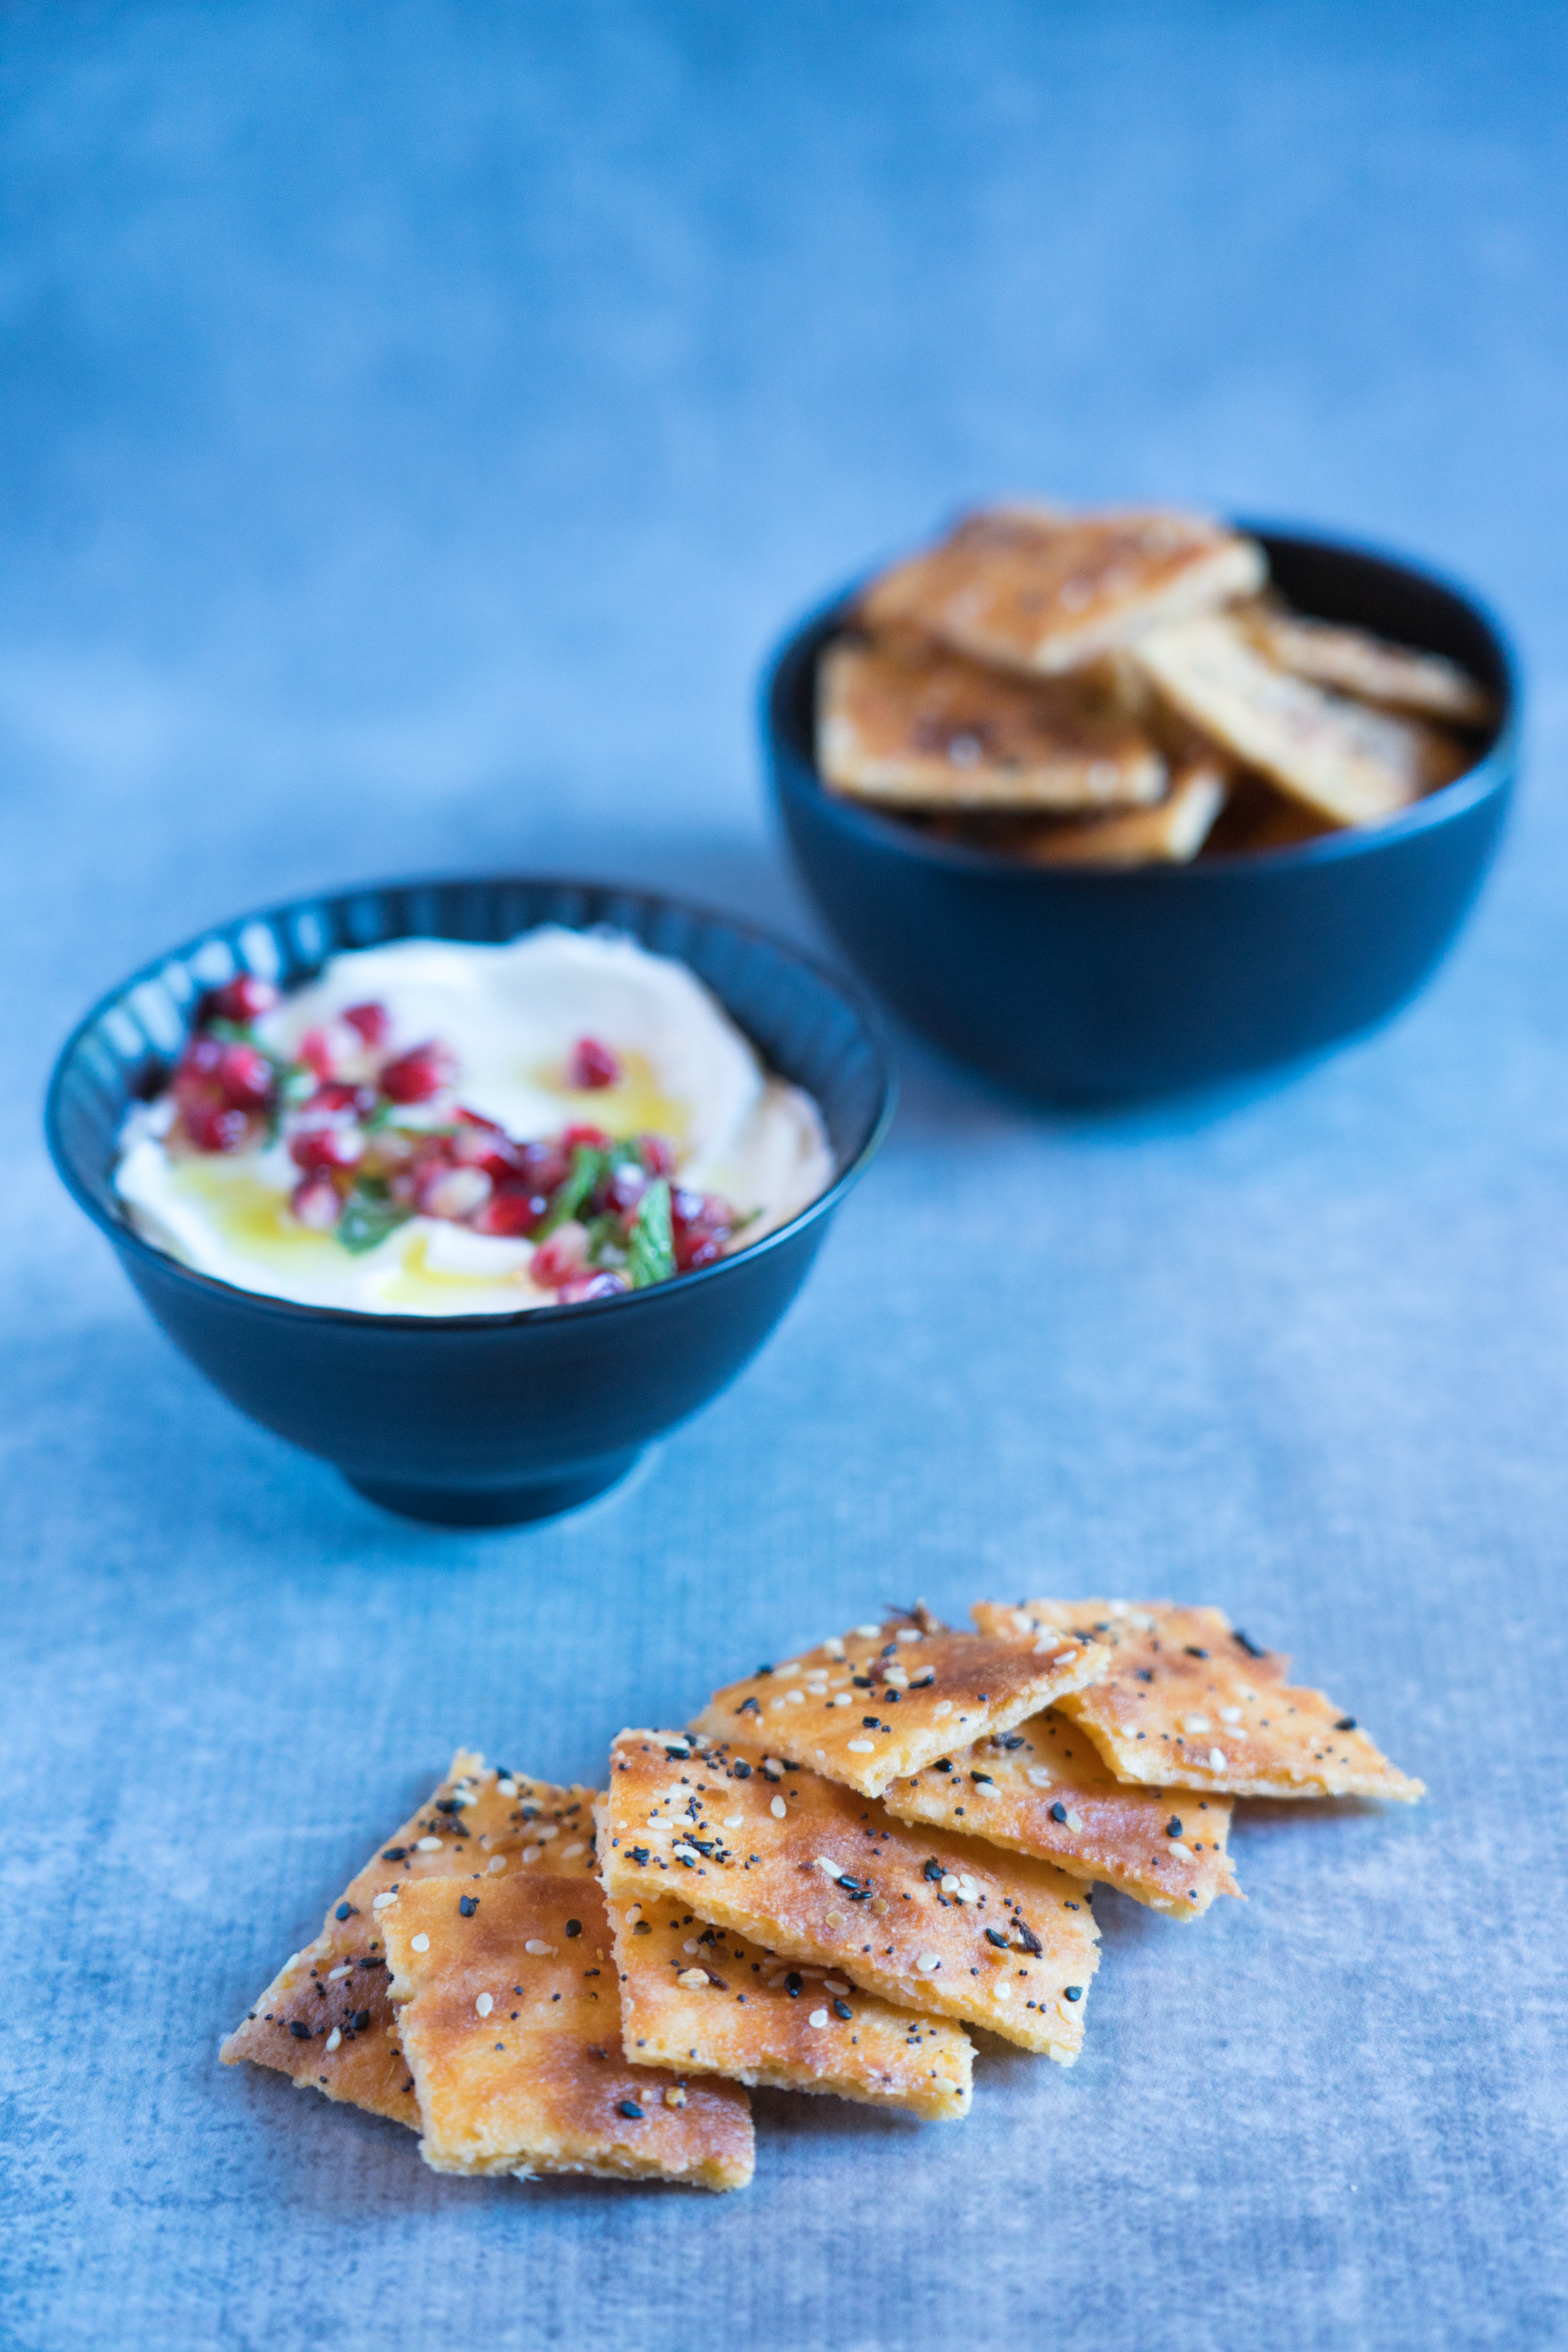 Gluten-free Everything Bagel Cheese Crackers with Creamy Feta Dip